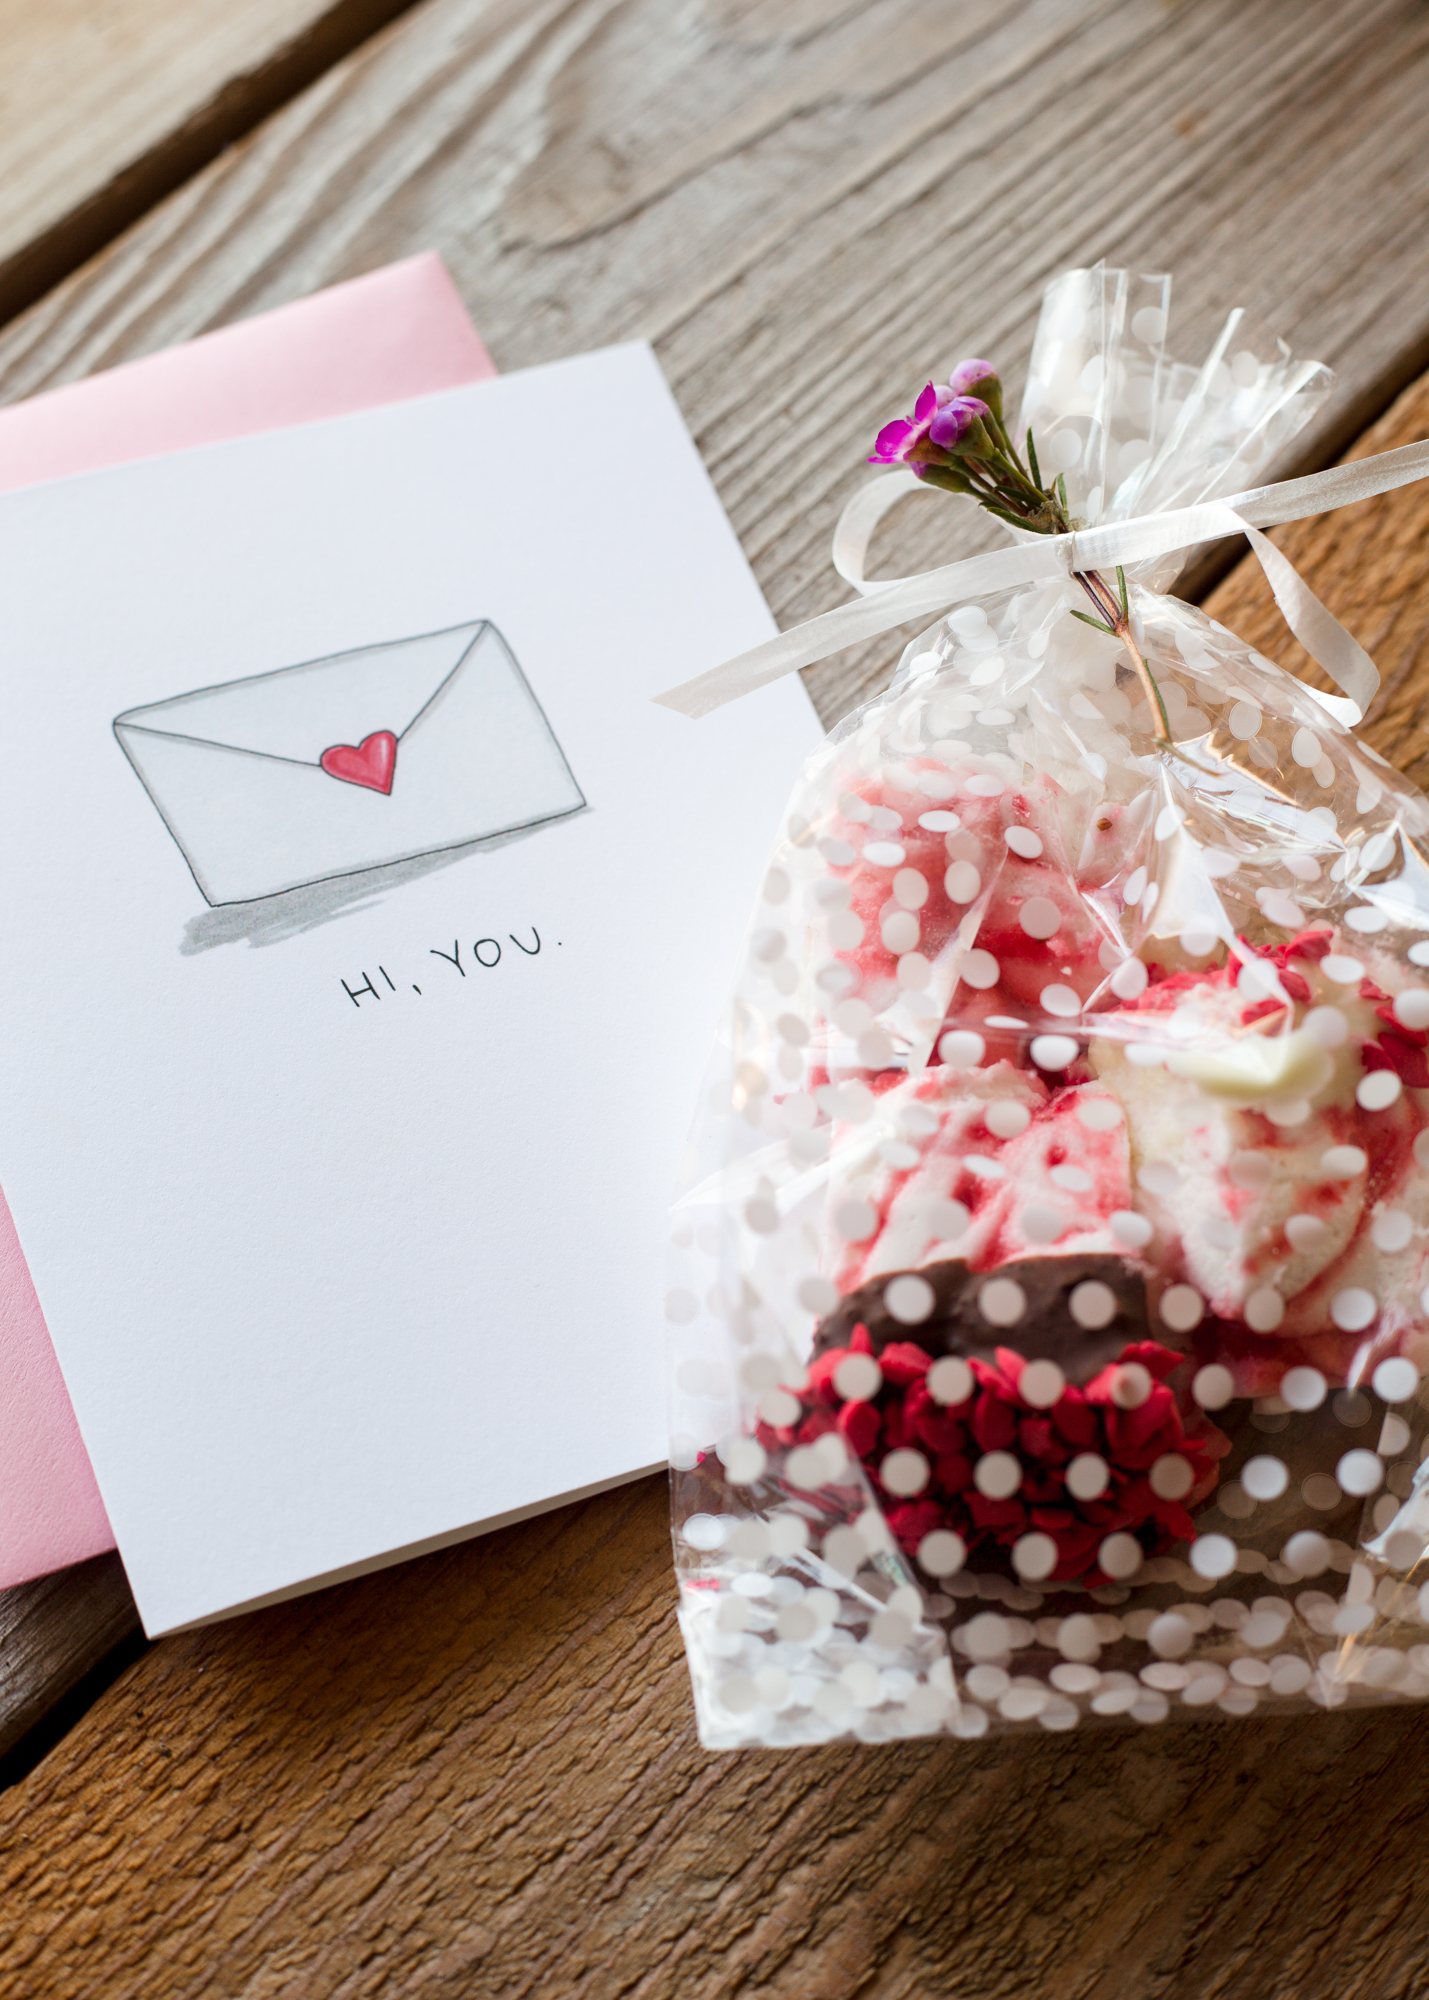 We decided to bag up a few of our marshmallows to share with friends! Hi, You card  from the  TLK Shop .